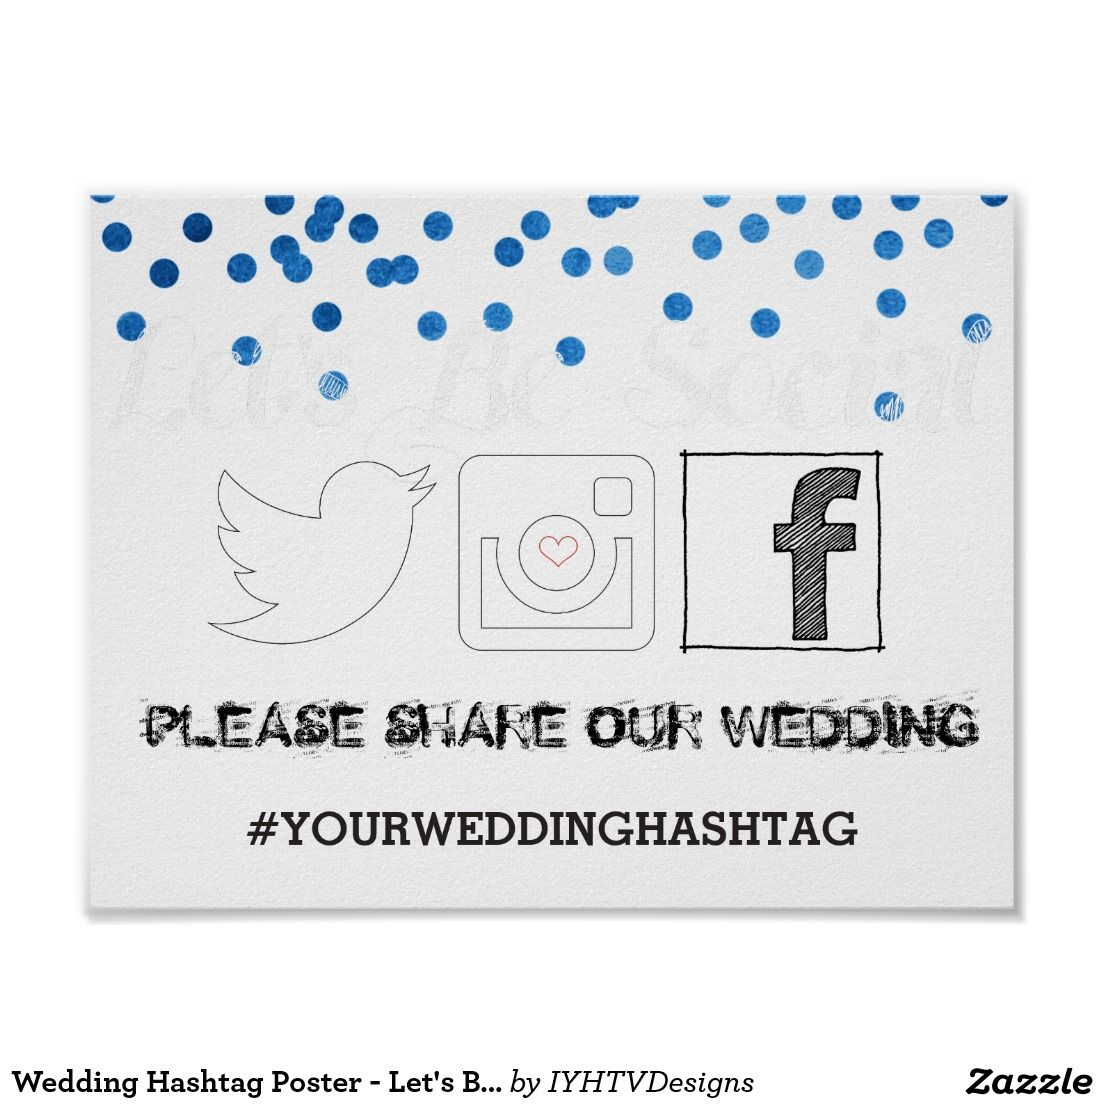 Hashtag Poster: Wedding Hashtag Poster - Let's Be Social